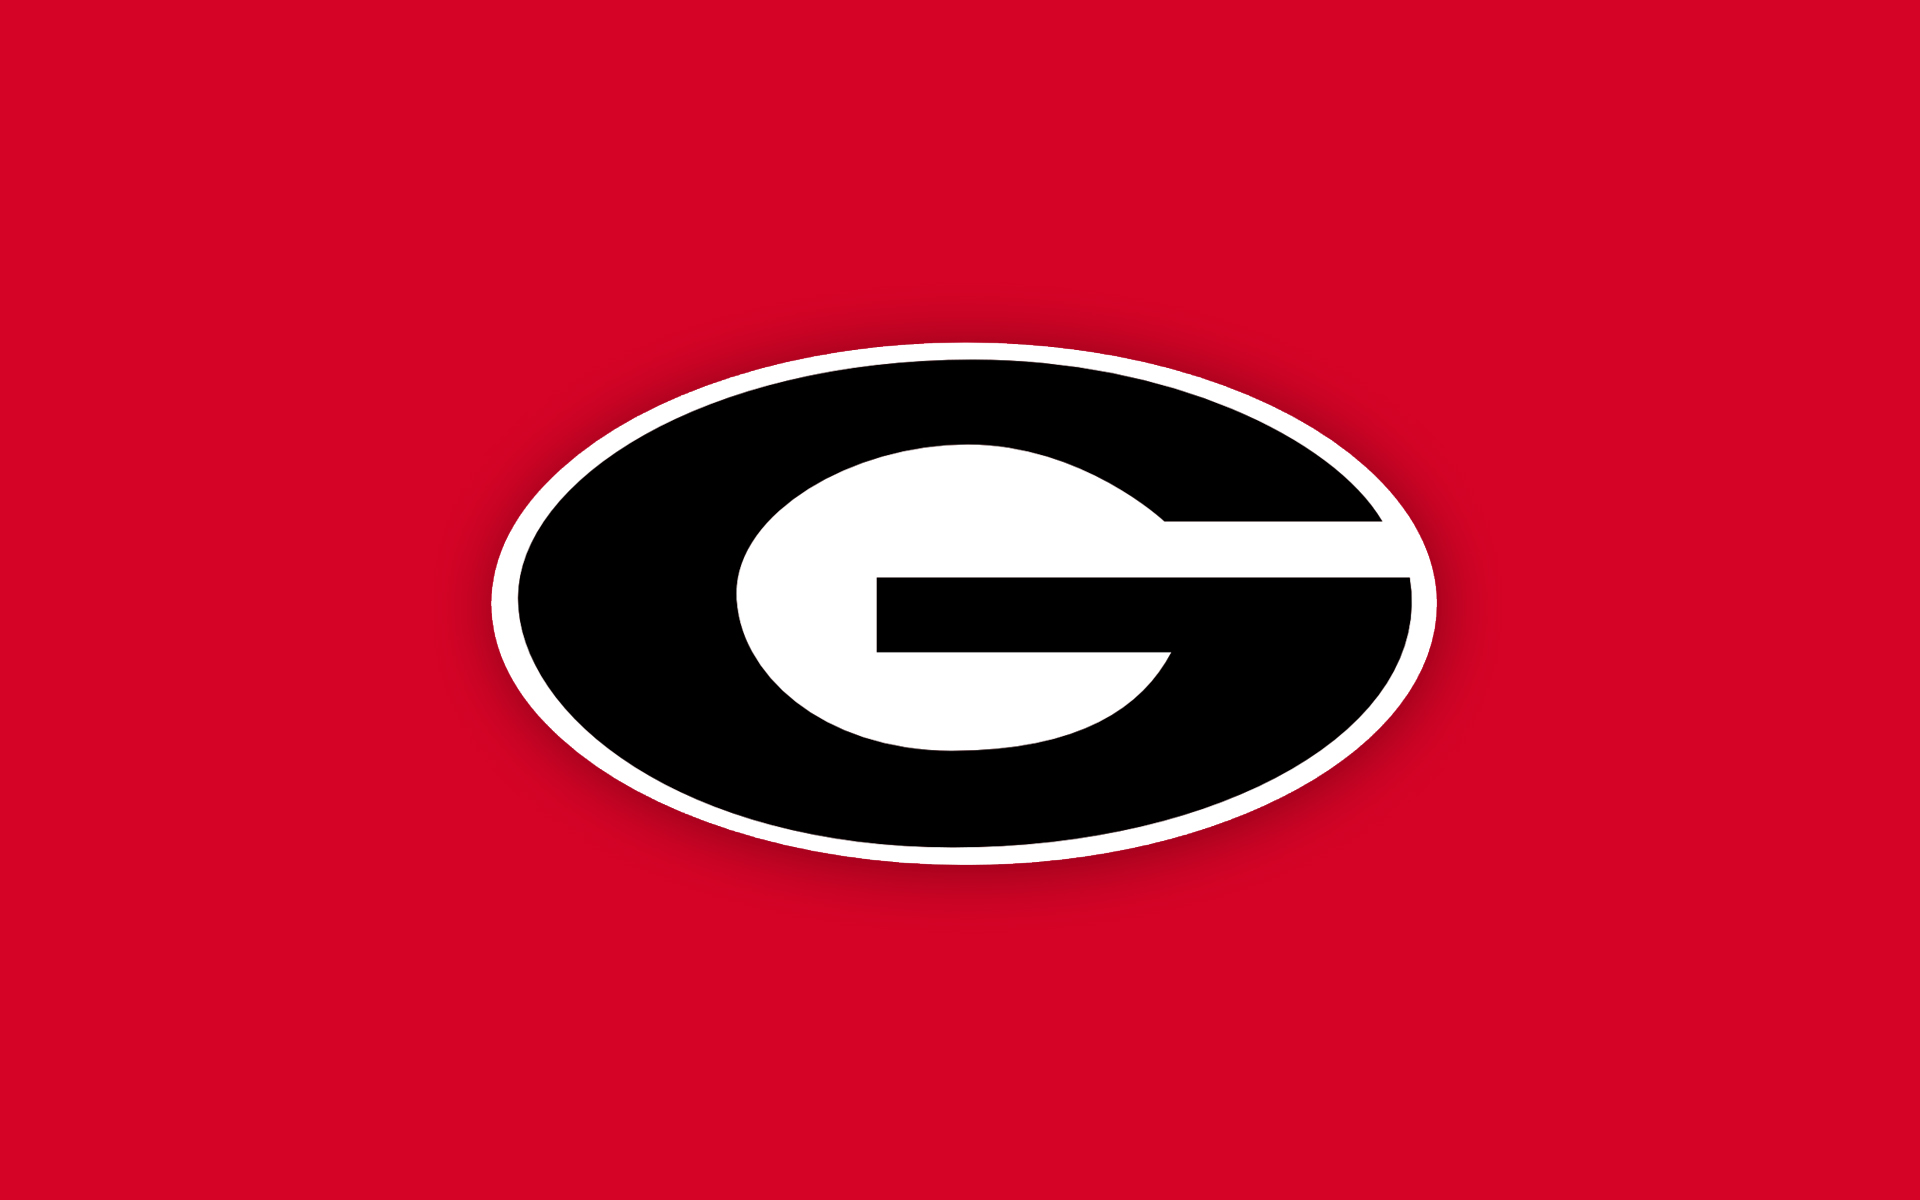 Georgia Football Wallpaper   Football Wallpaper HD Football Picture 1920x1200